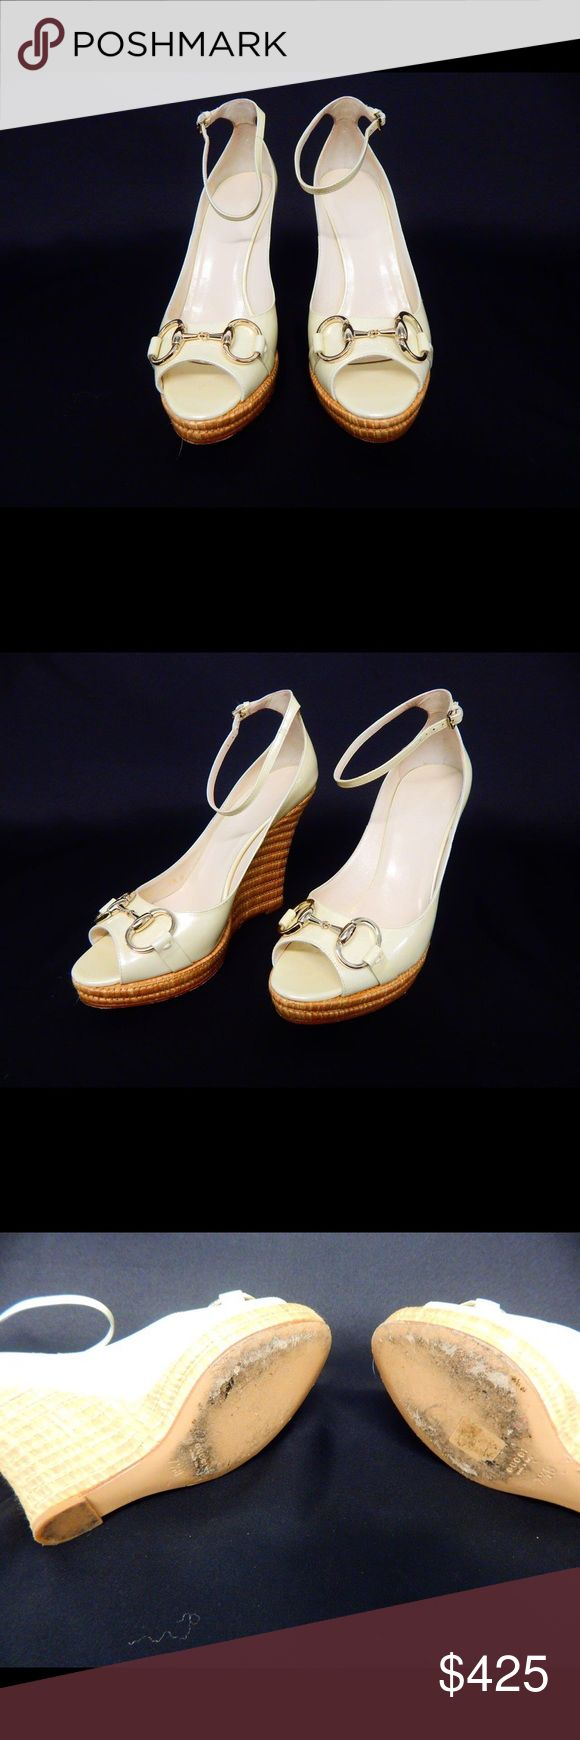 Authentic Gucci Wedges Gucci Vernice Soft Metal, Mystic White Woven Heel Wedge with gold finish trim, size 7+B, in box with individual dust bags, certificate of authenticity, original price $595, they show wear on bottom but otherwise in excellent shape. Perfect for summer! Gucci Shoes Wedges